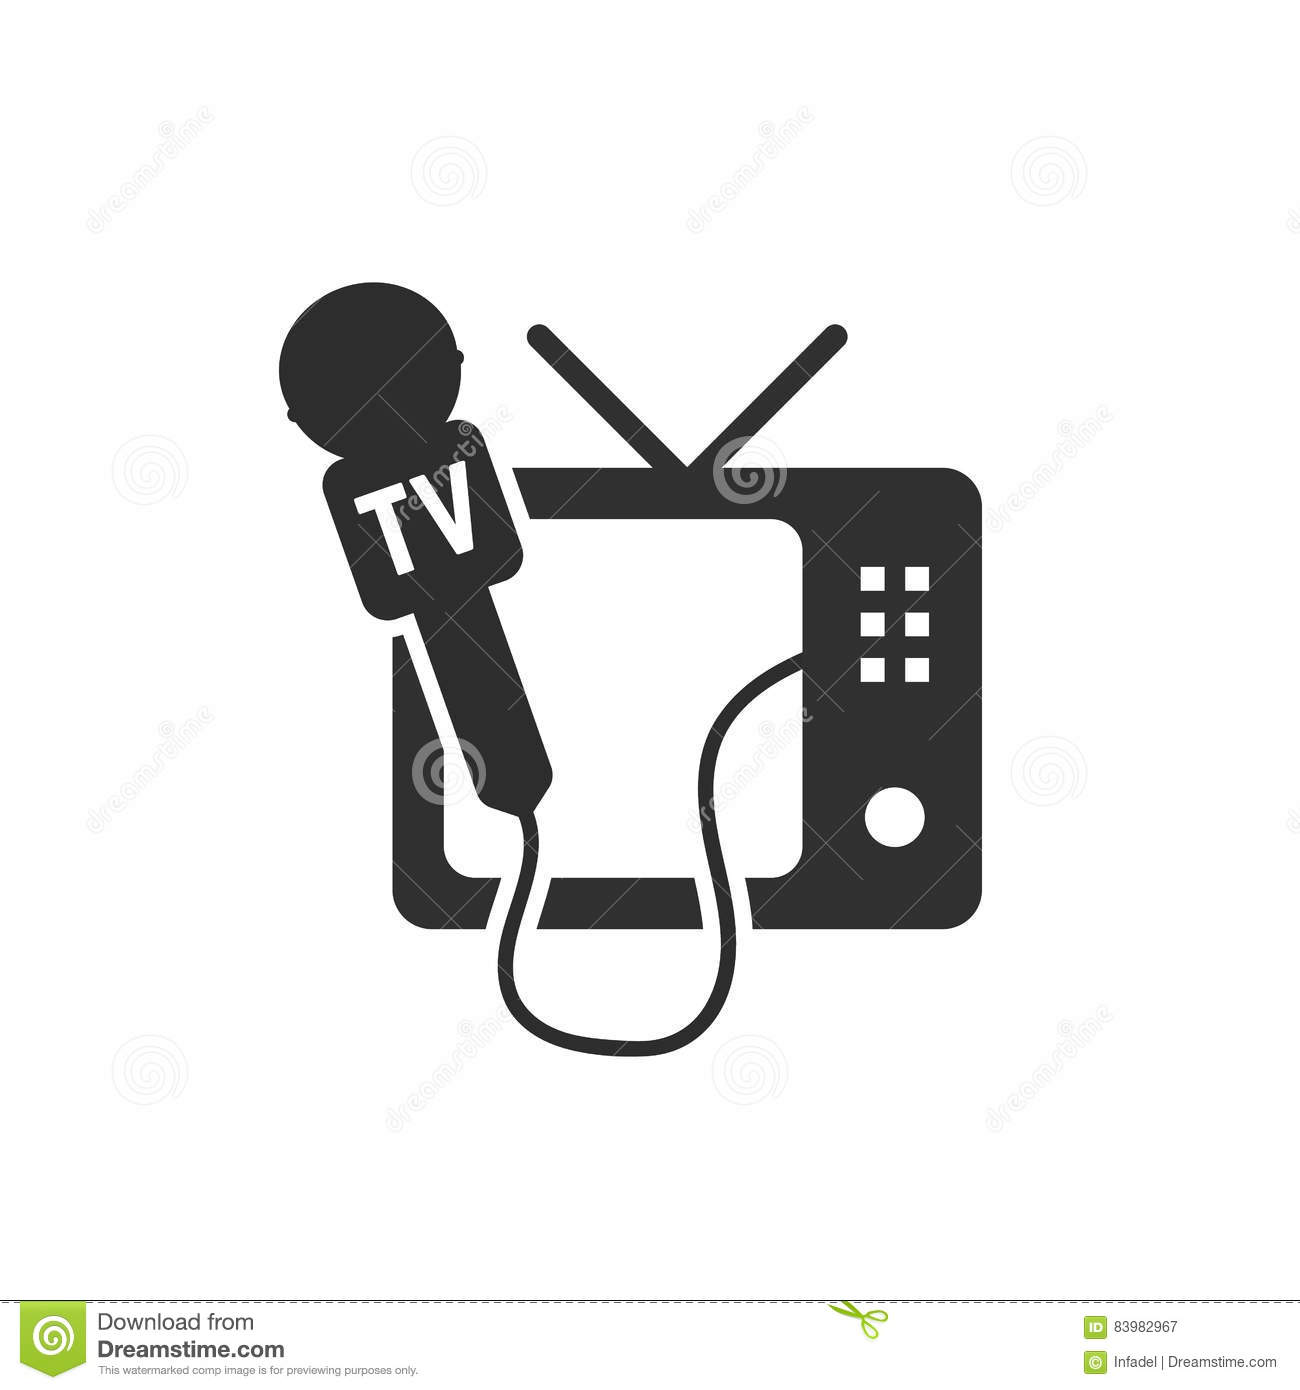 Black Tv And Microphone Icon Stock Vector - Illustration of icon ...